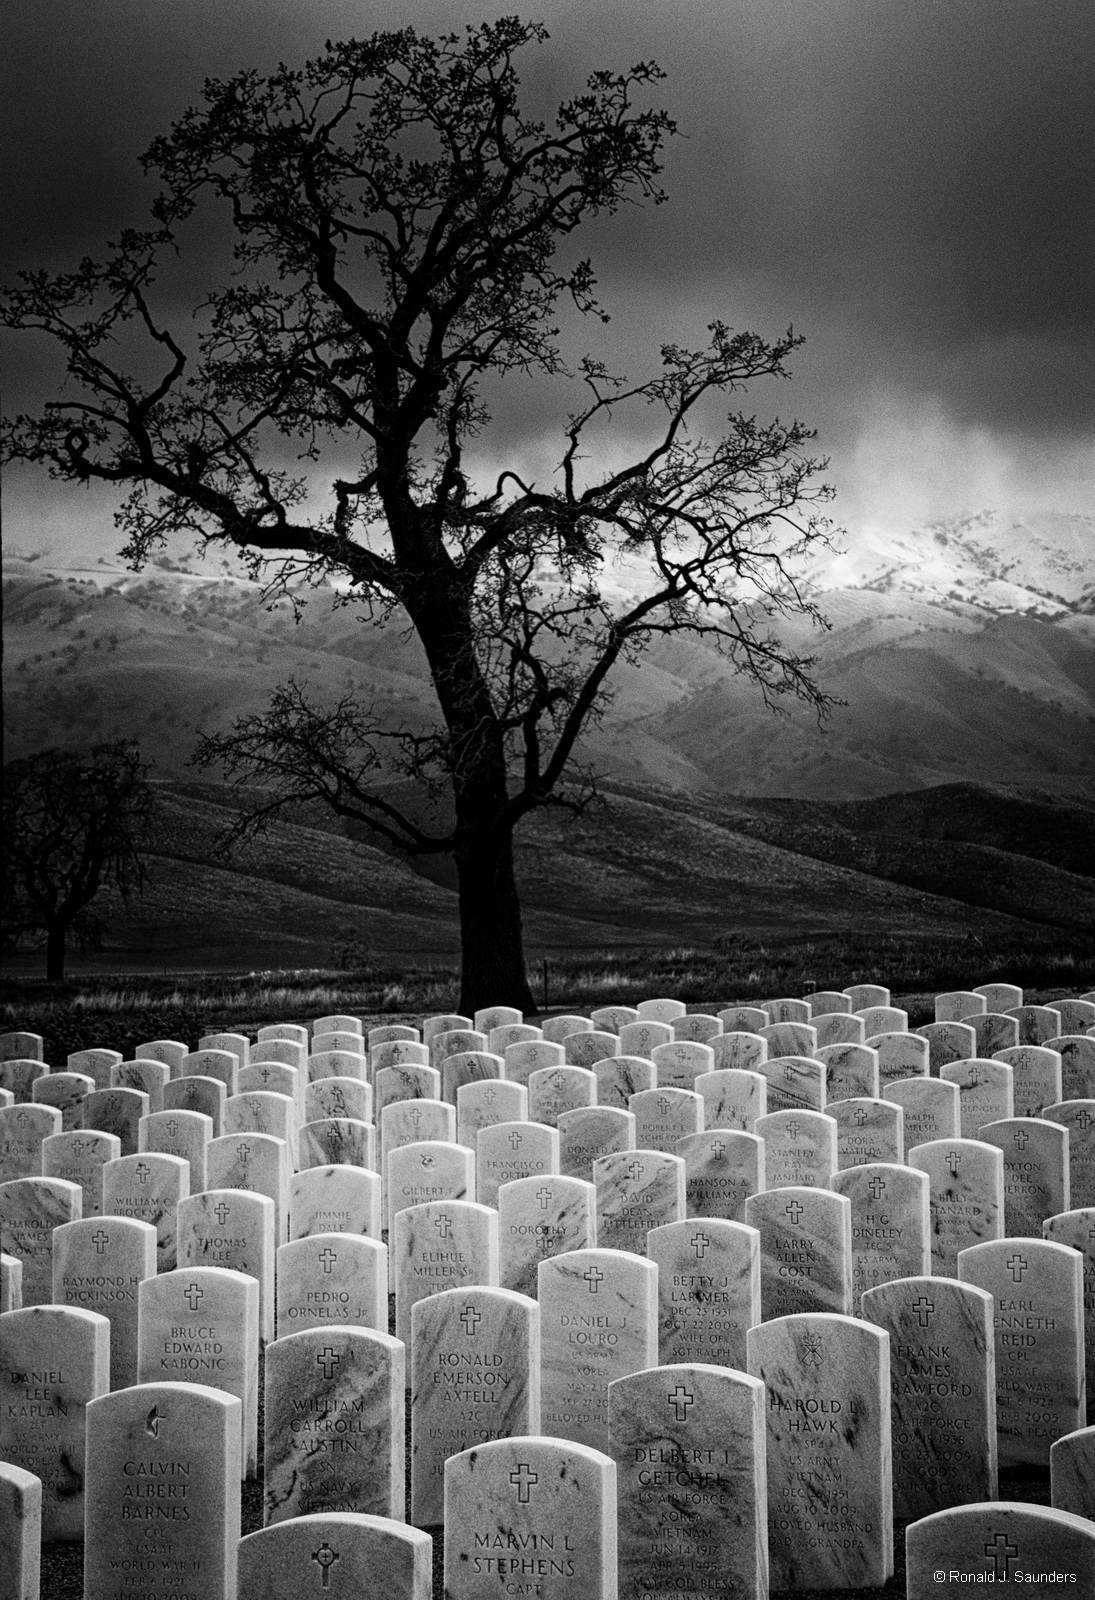 mountains, Bakersfield, cemetery, national, ronald, saunders, ron, black, white, exhibited, photo